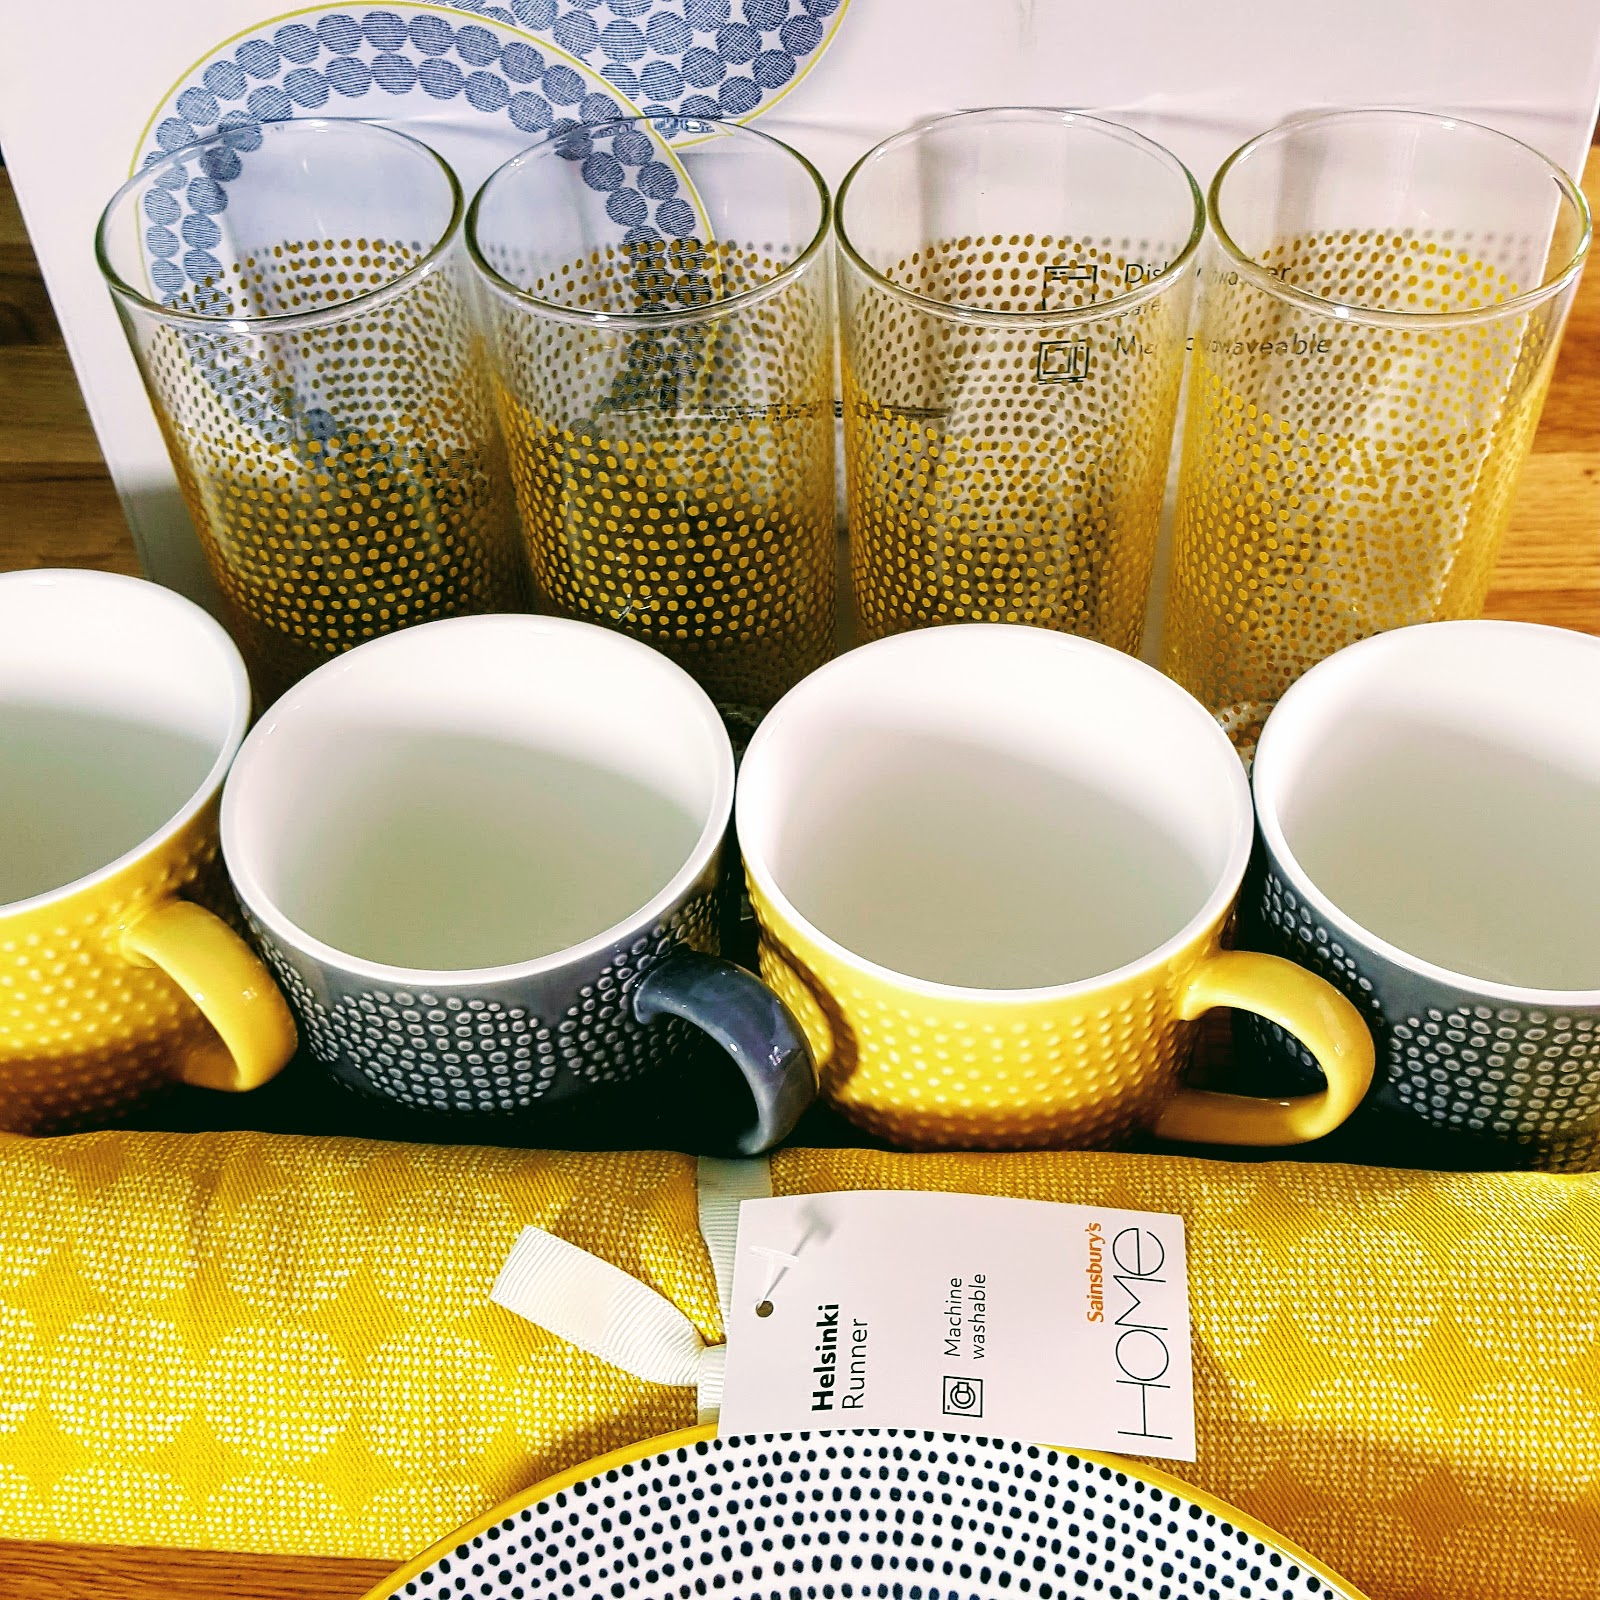 Spring 2018 Tableware Collection From Sainsbury's